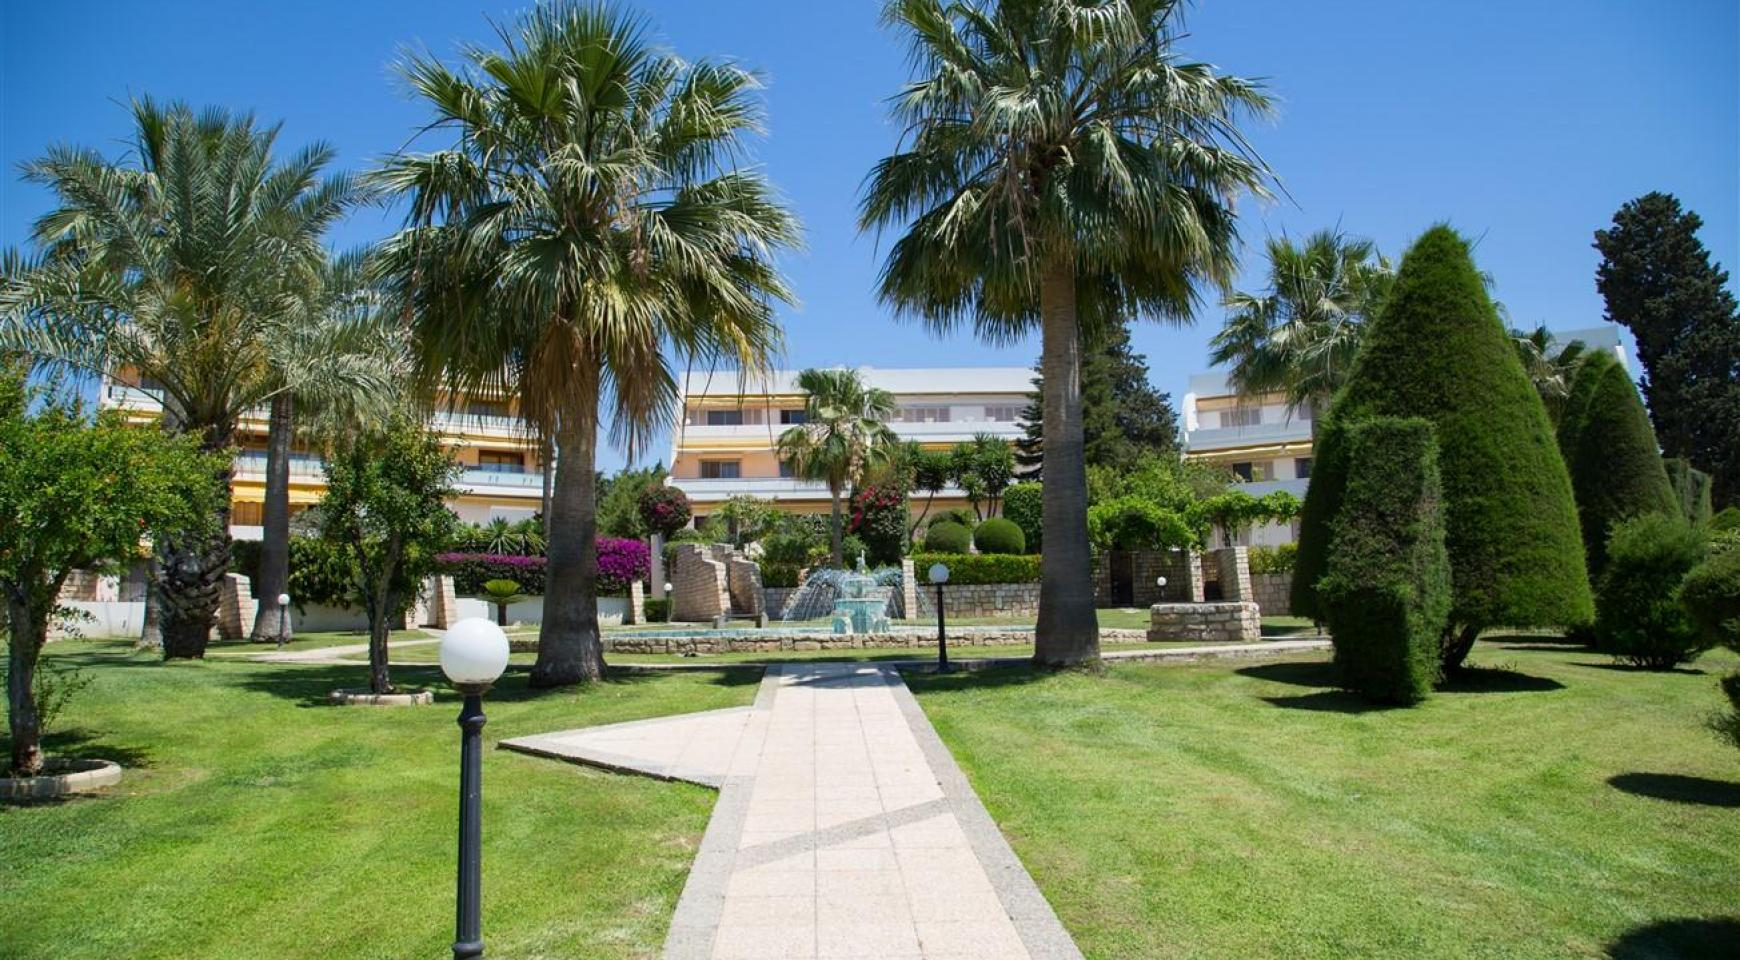 3 Bedroom Apartment in Thera Complex by the Sea - 7